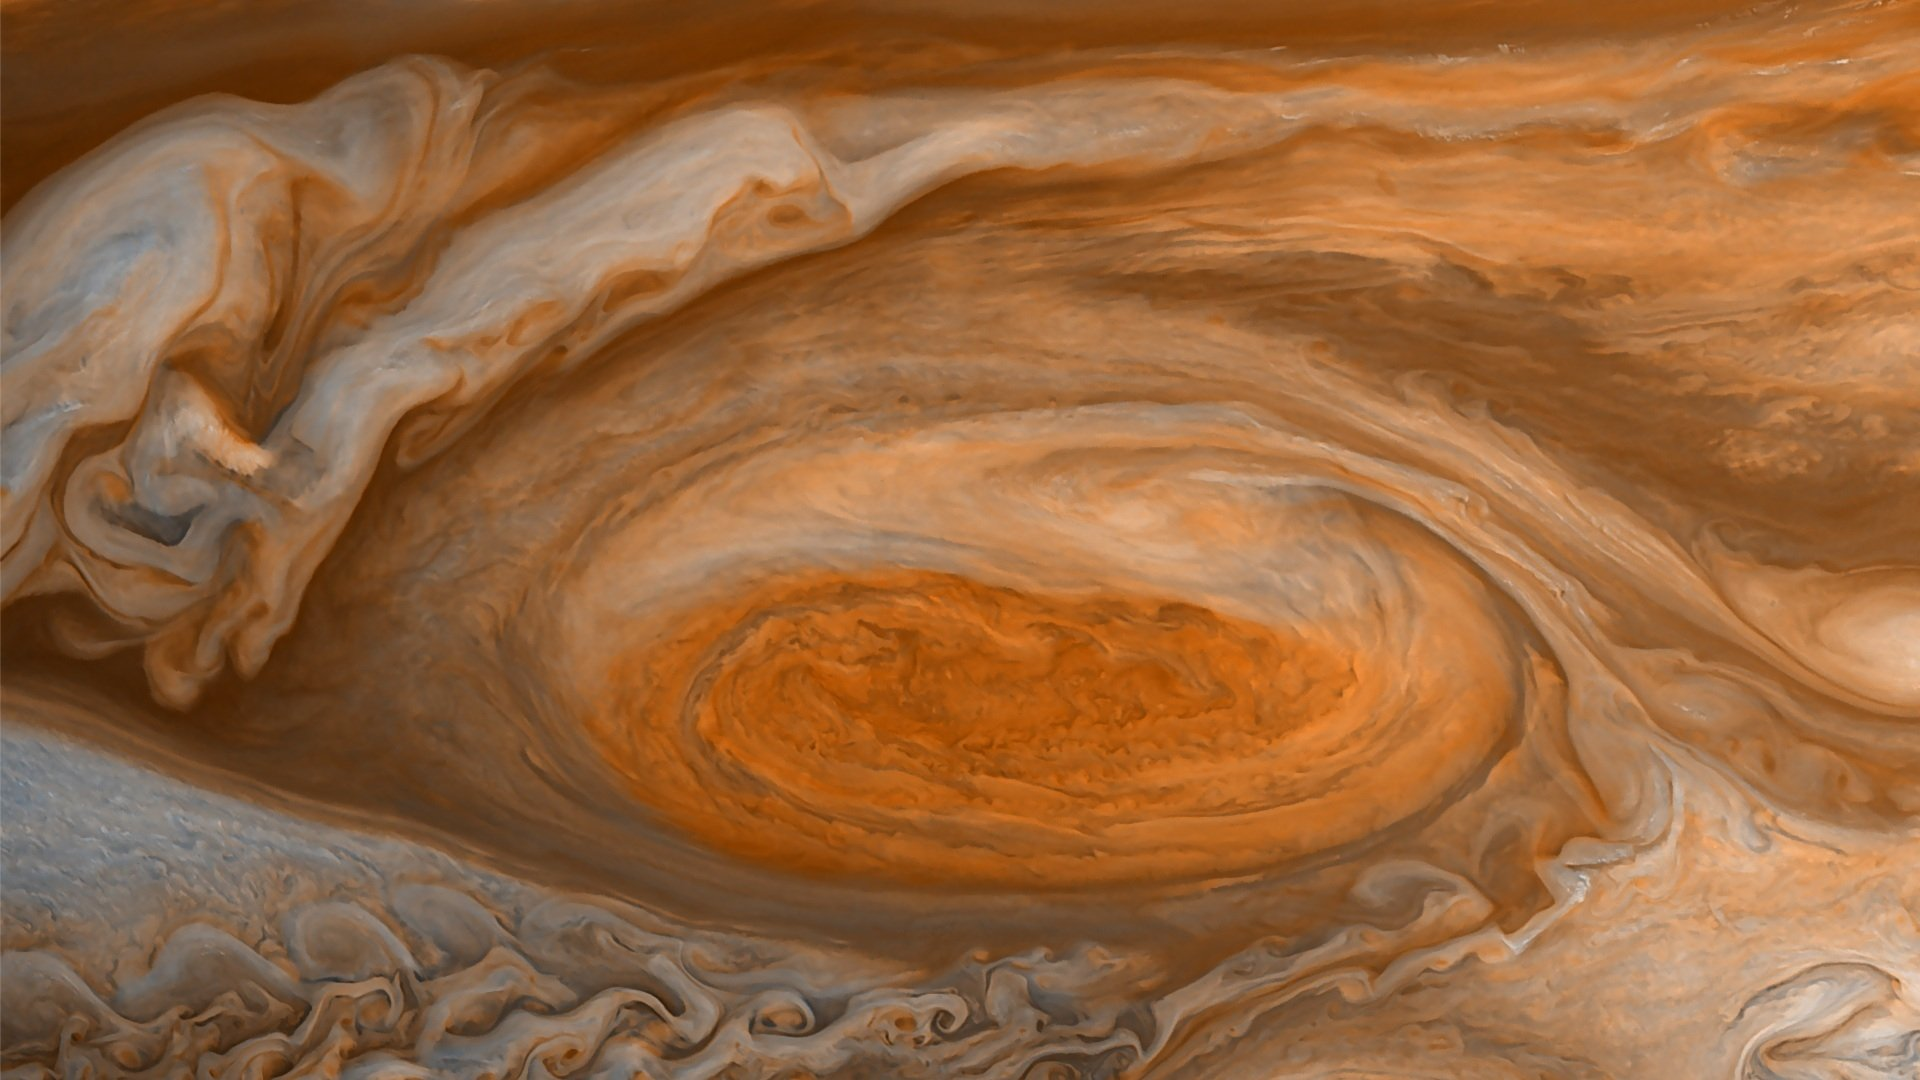 Jupiter Wallpapers 21761 Kb   4USkY 1920x1080